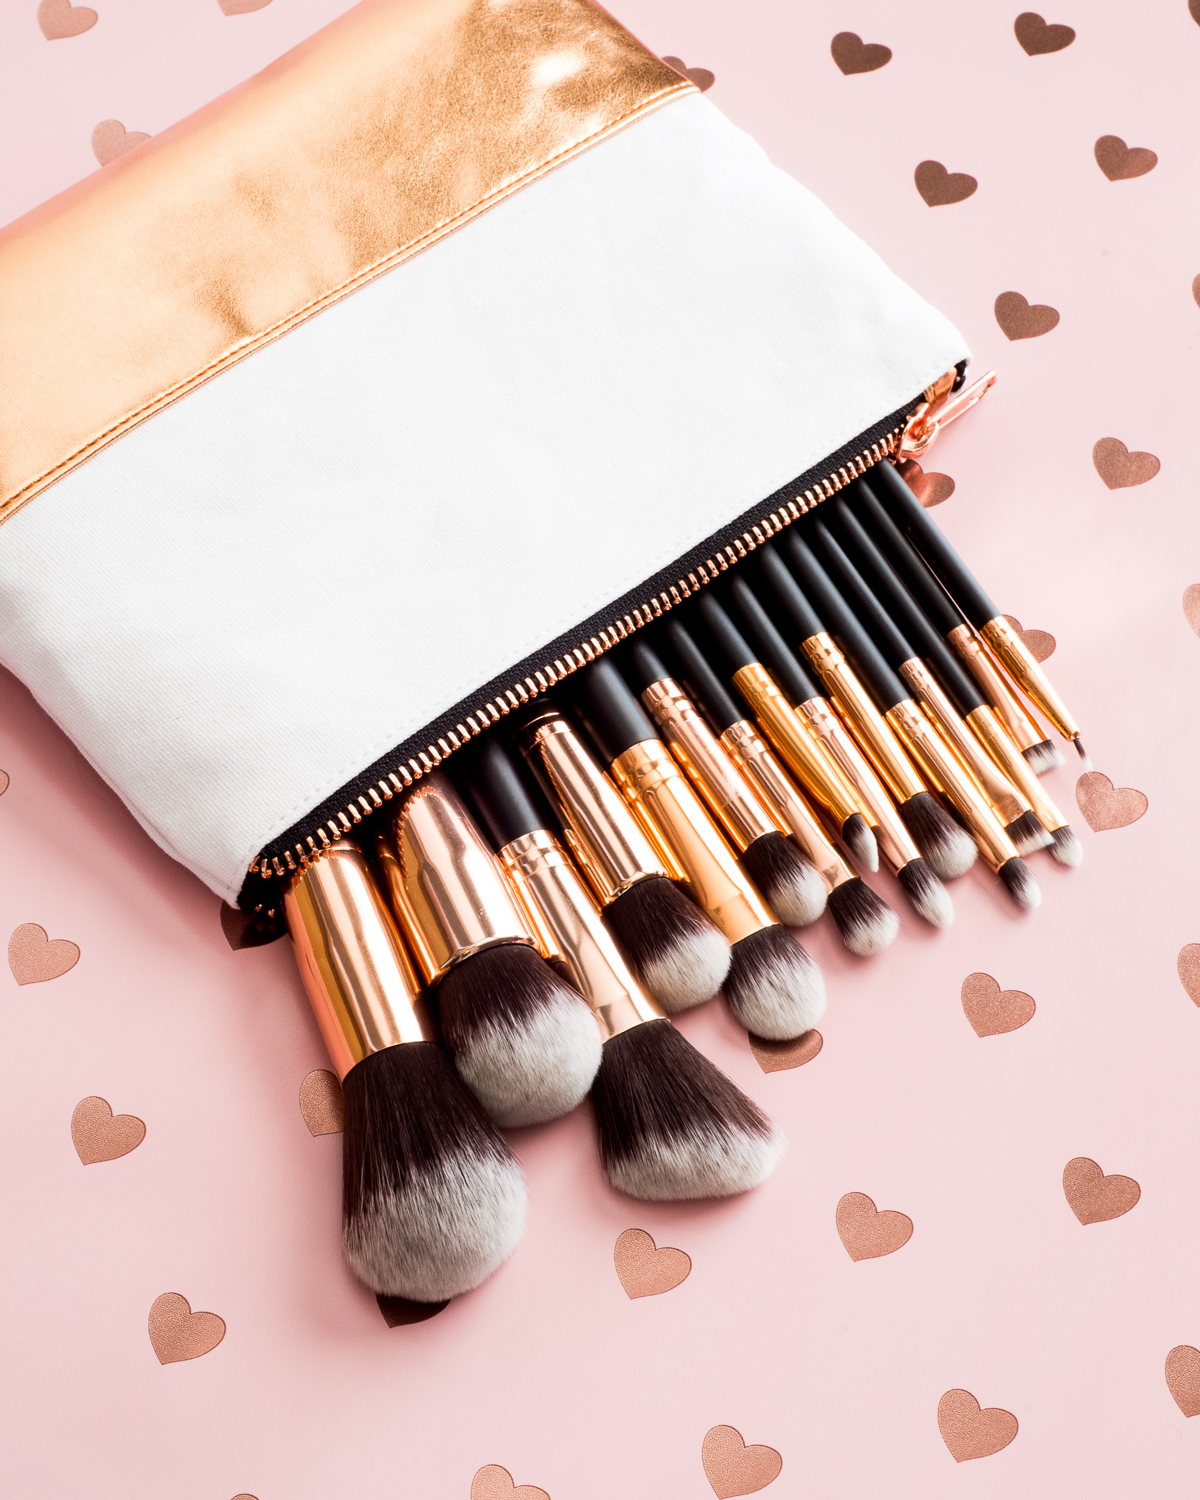 M.O.T.D. Brush Set on a pink hearts background